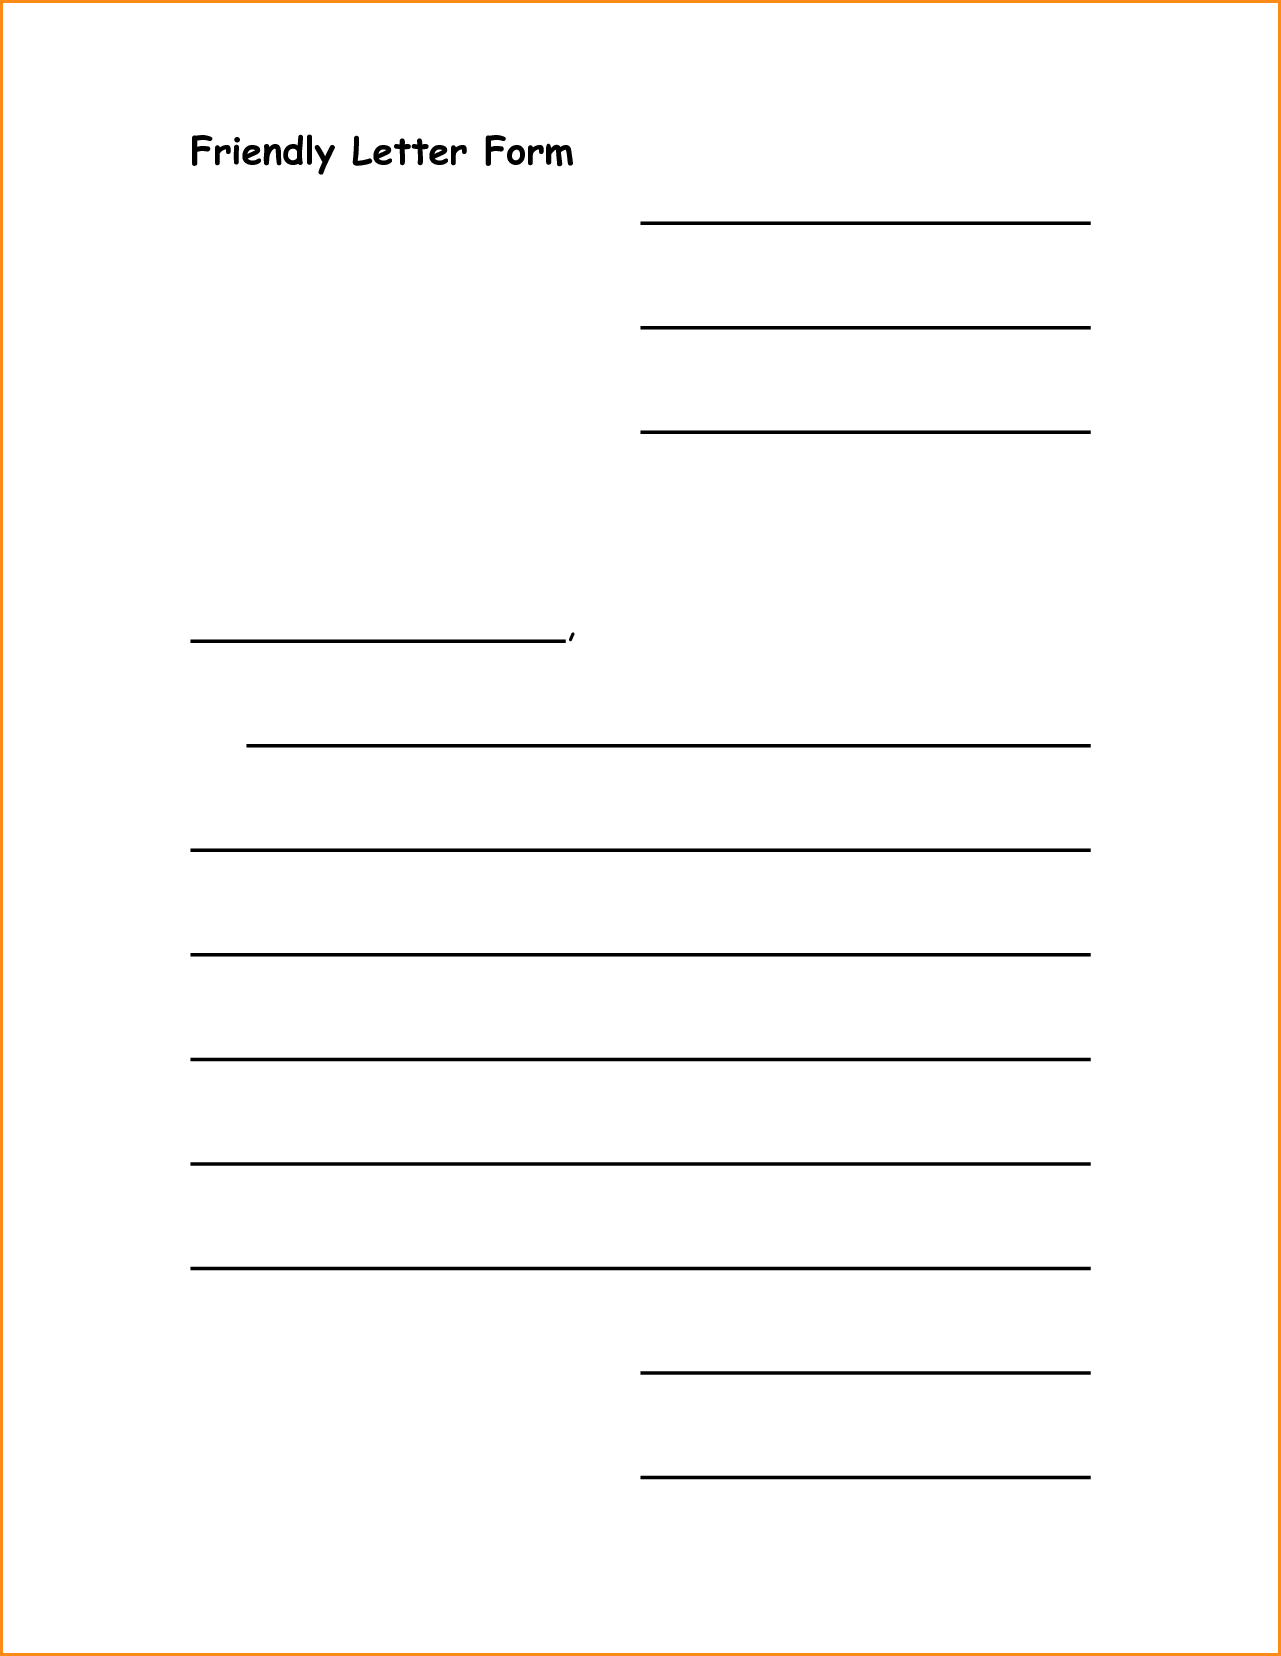 friendly letter template pdf